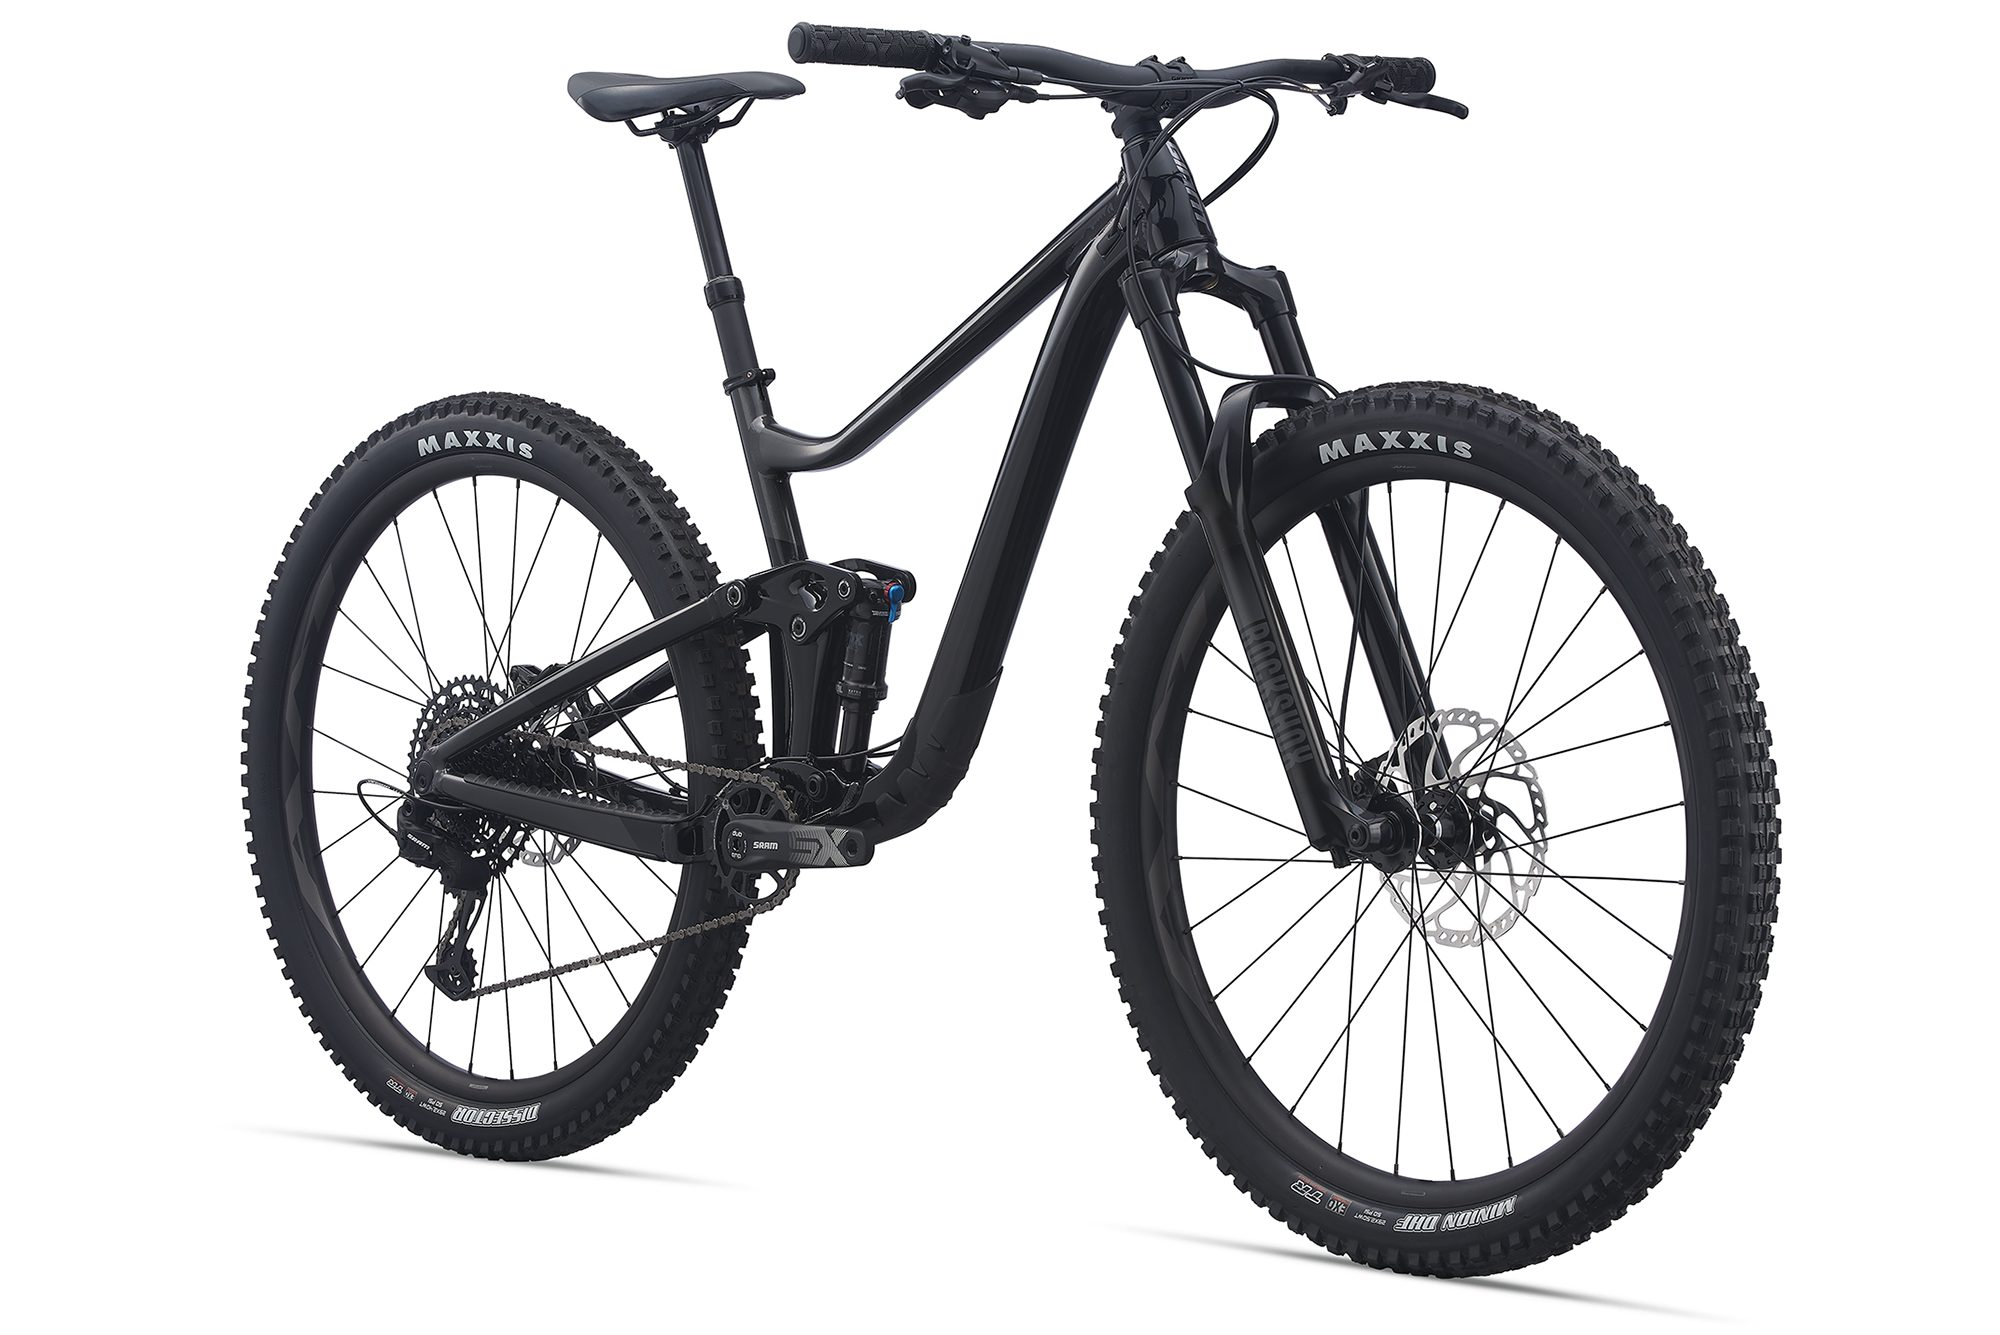 New Giant Trance X snubs its nose at Downcountry bandwagon - MBR